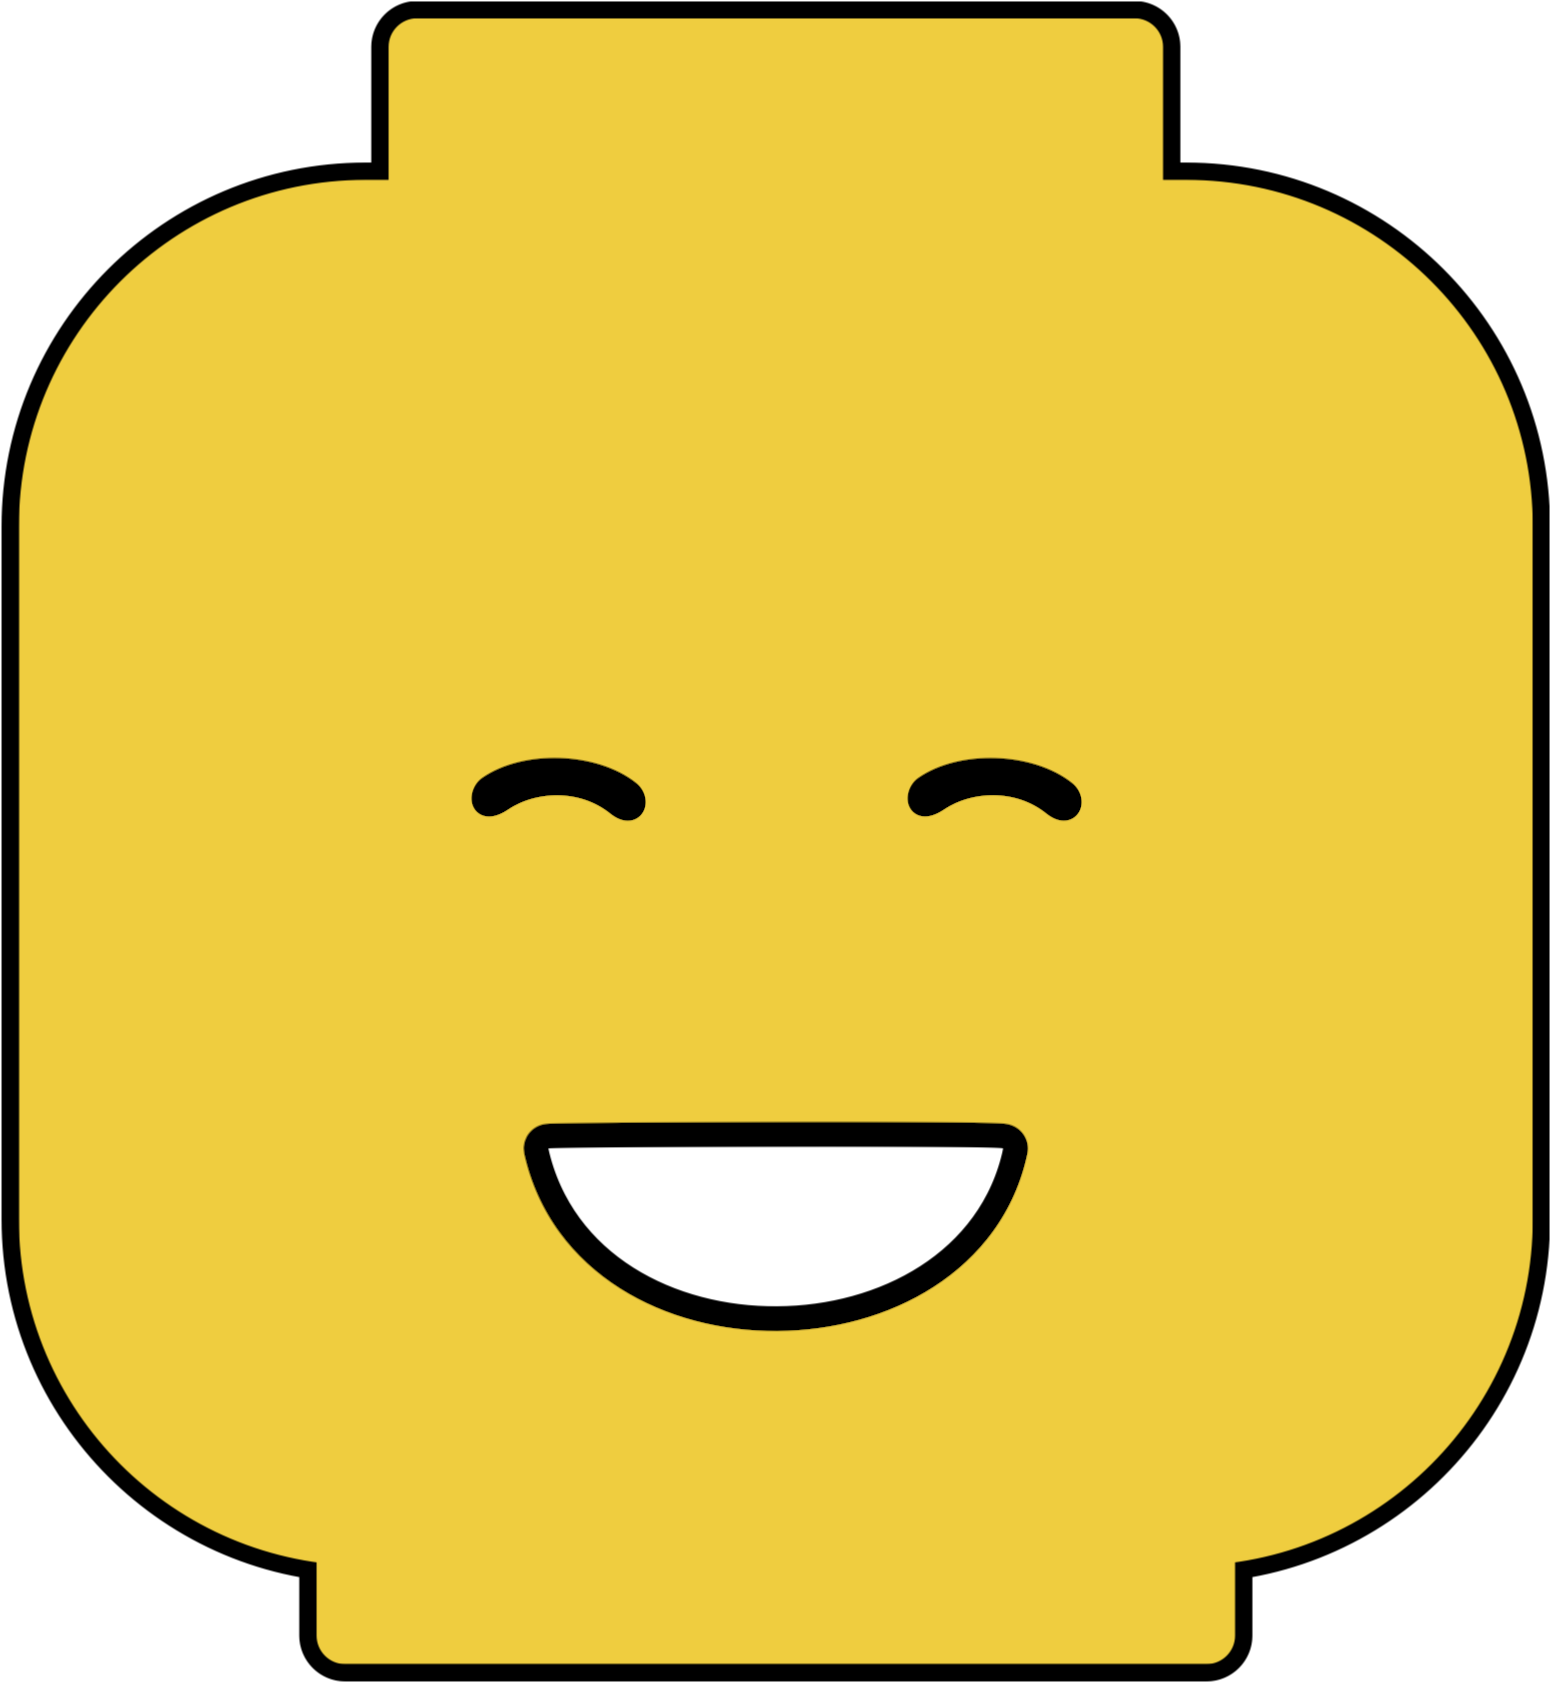 image about Lego Minifigure Printable titled Eyes Shut Lego Intellect Free of charge Printable - Lego Minifigures